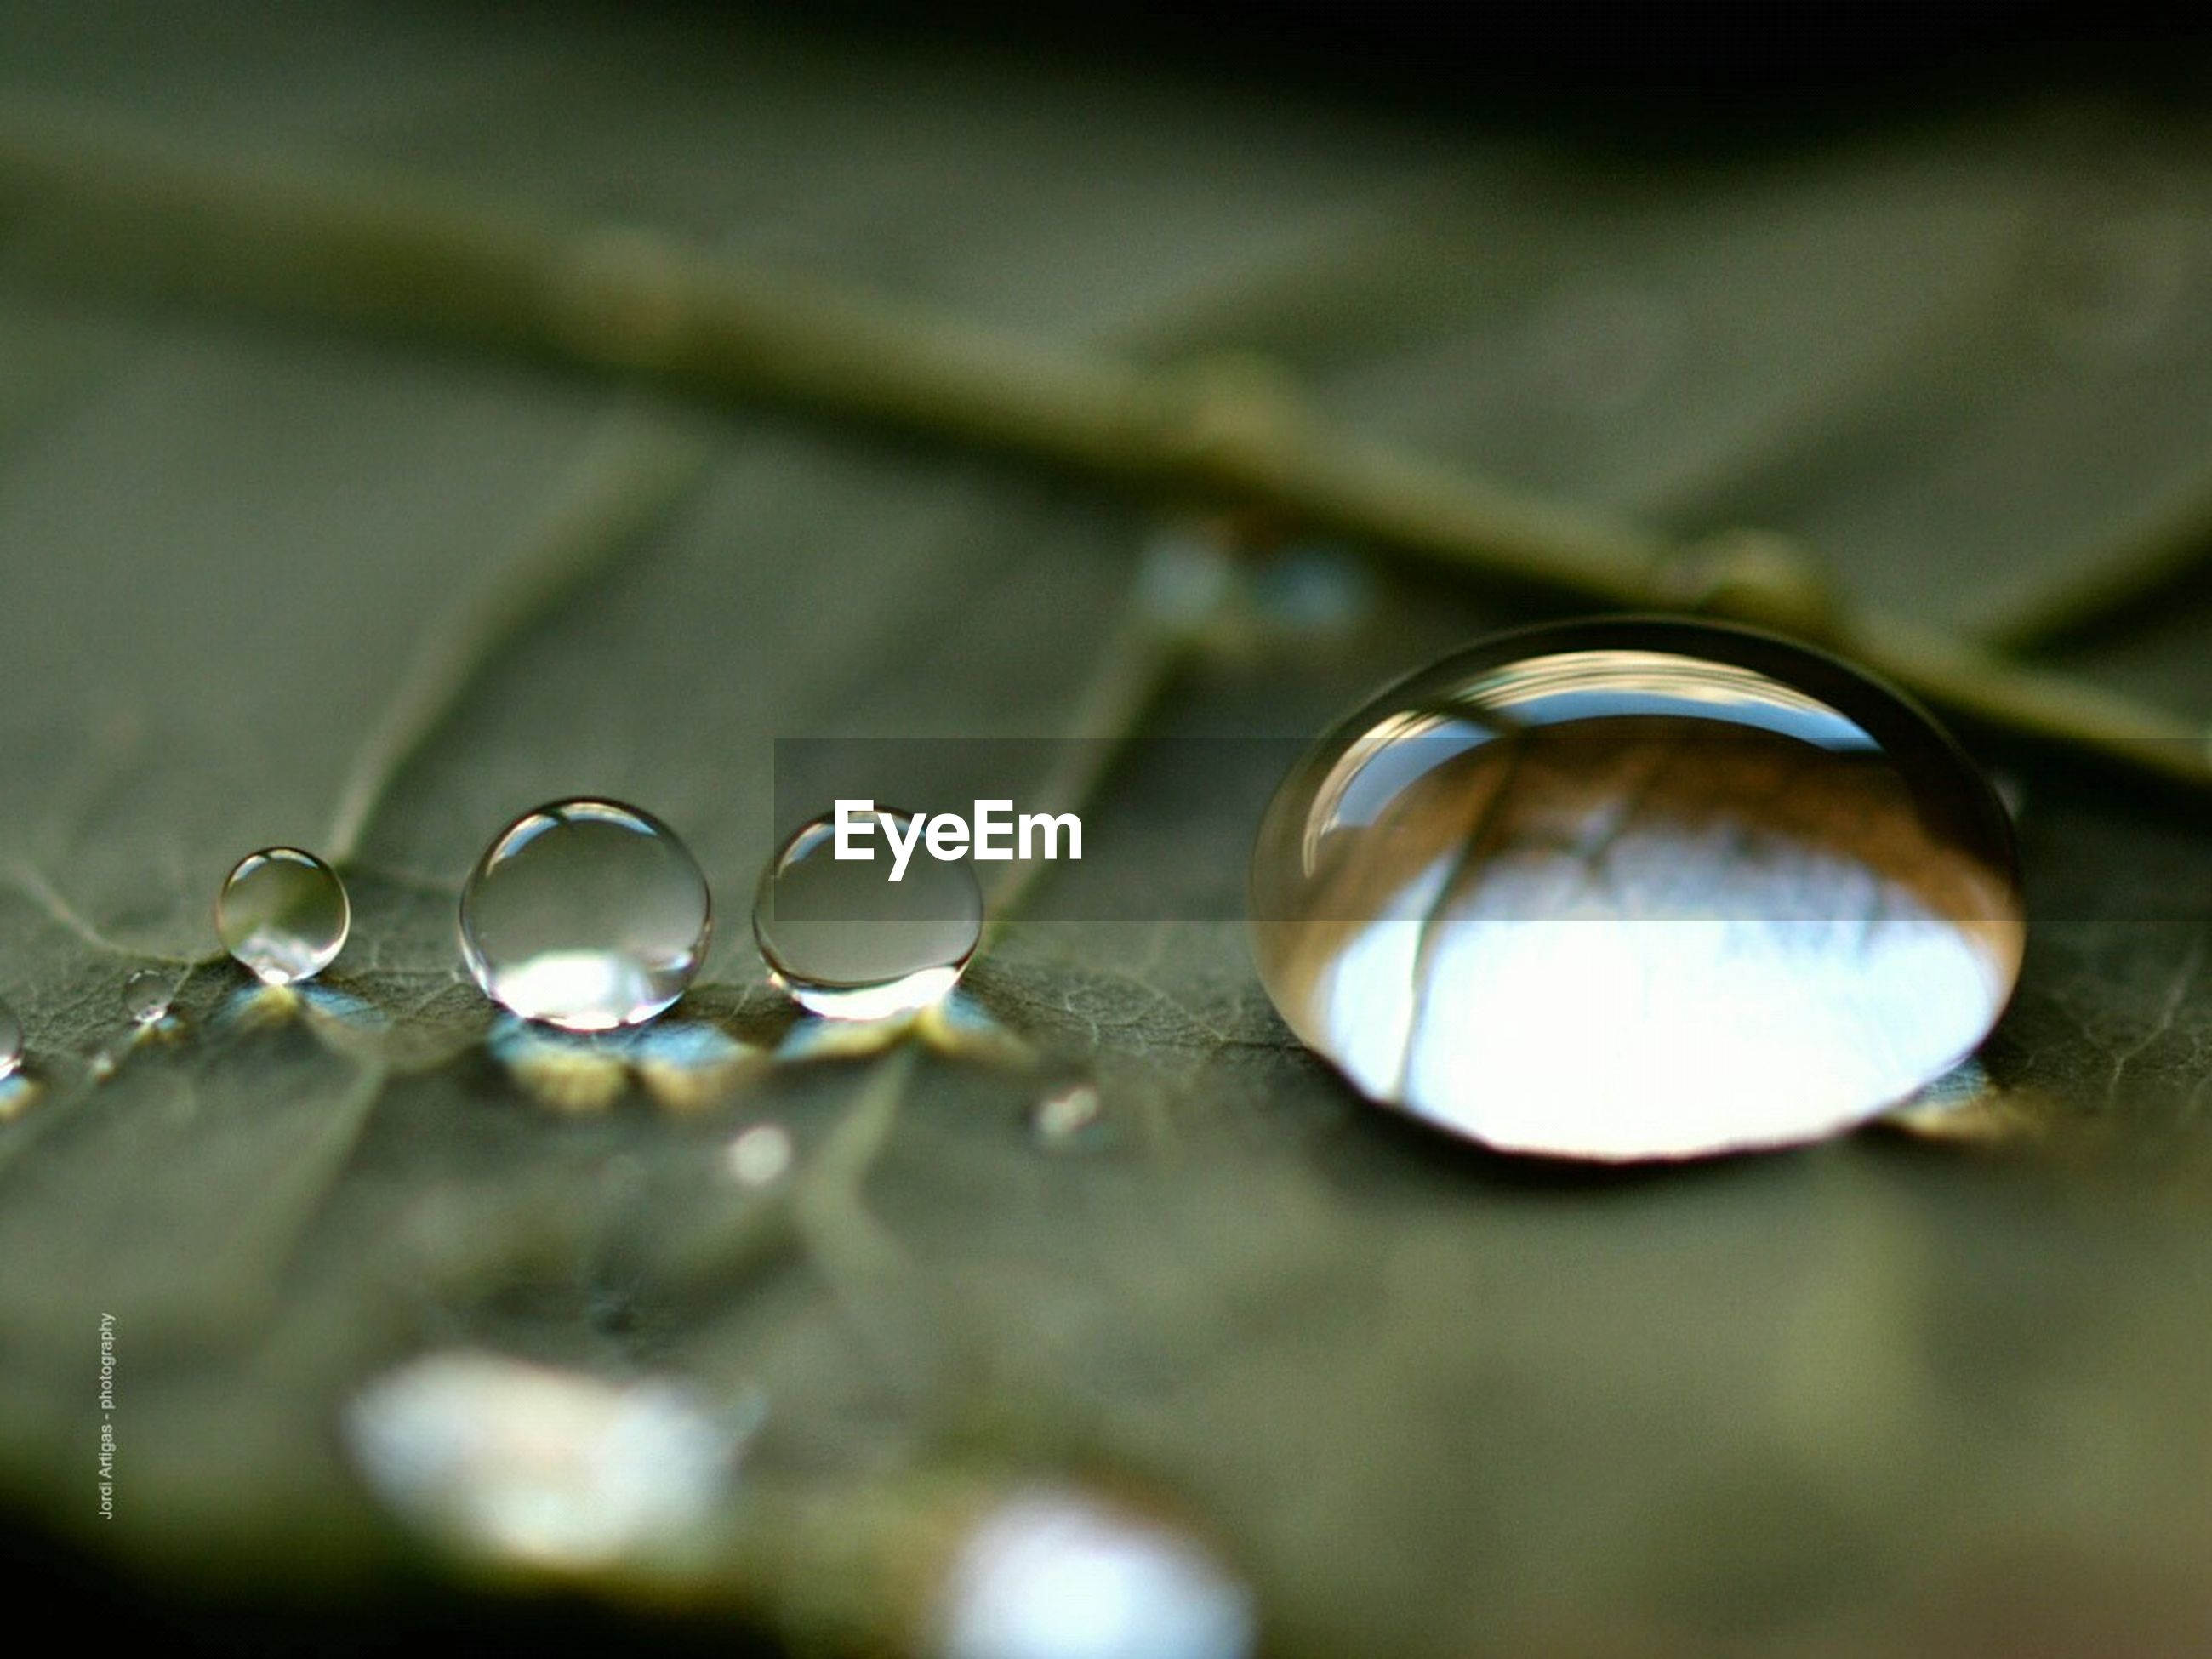 close-up, focus on foreground, selective focus, metal, indoors, sphere, no people, hanging, fragility, still life, circle, reflection, metallic, shiny, detail, lighting equipment, day, water, drop, nature